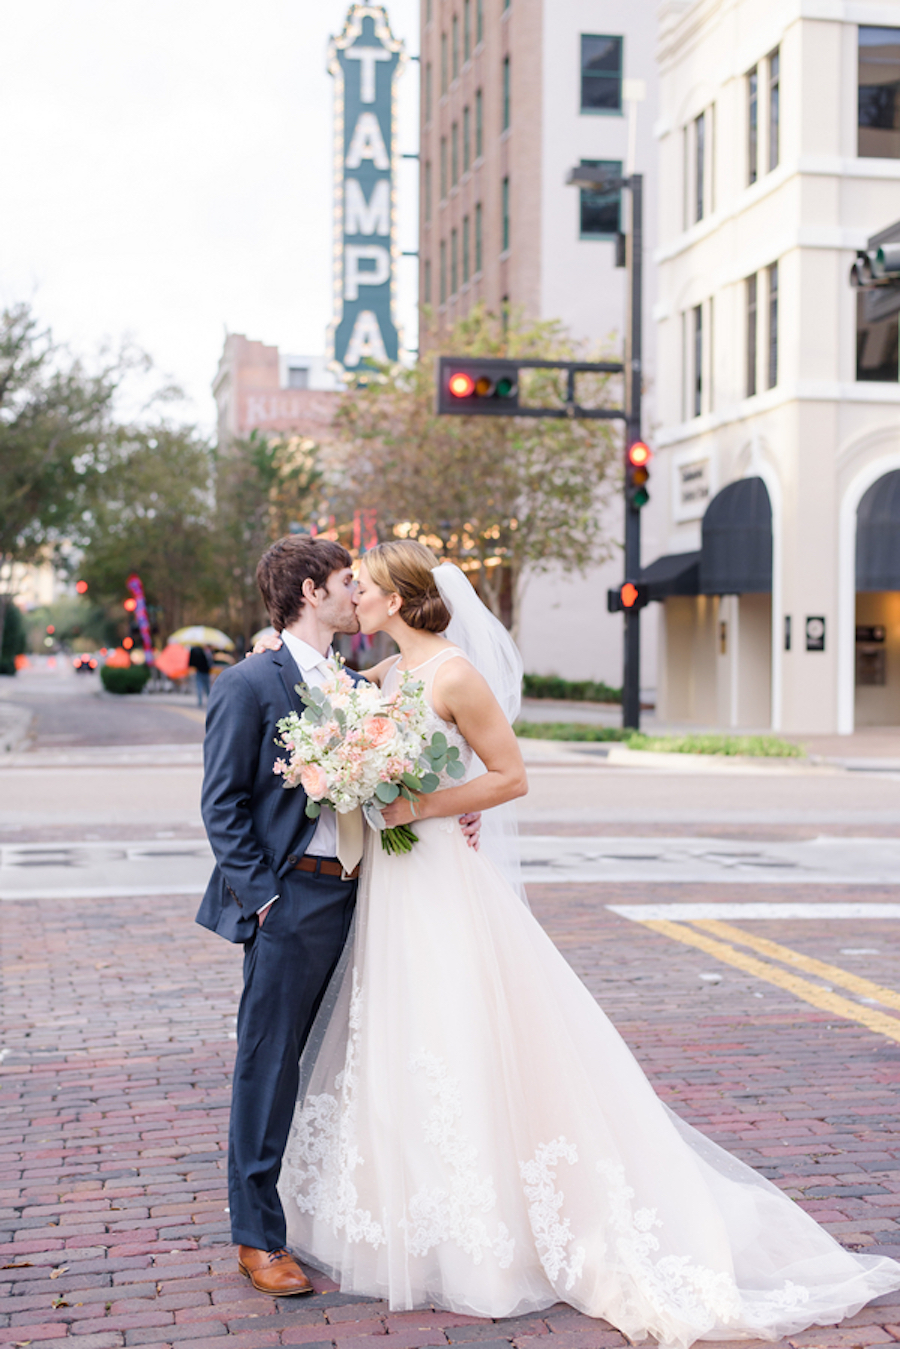 Tampa Bride and Groom, Outdoor Wedding Portrait in Downtown Tampa